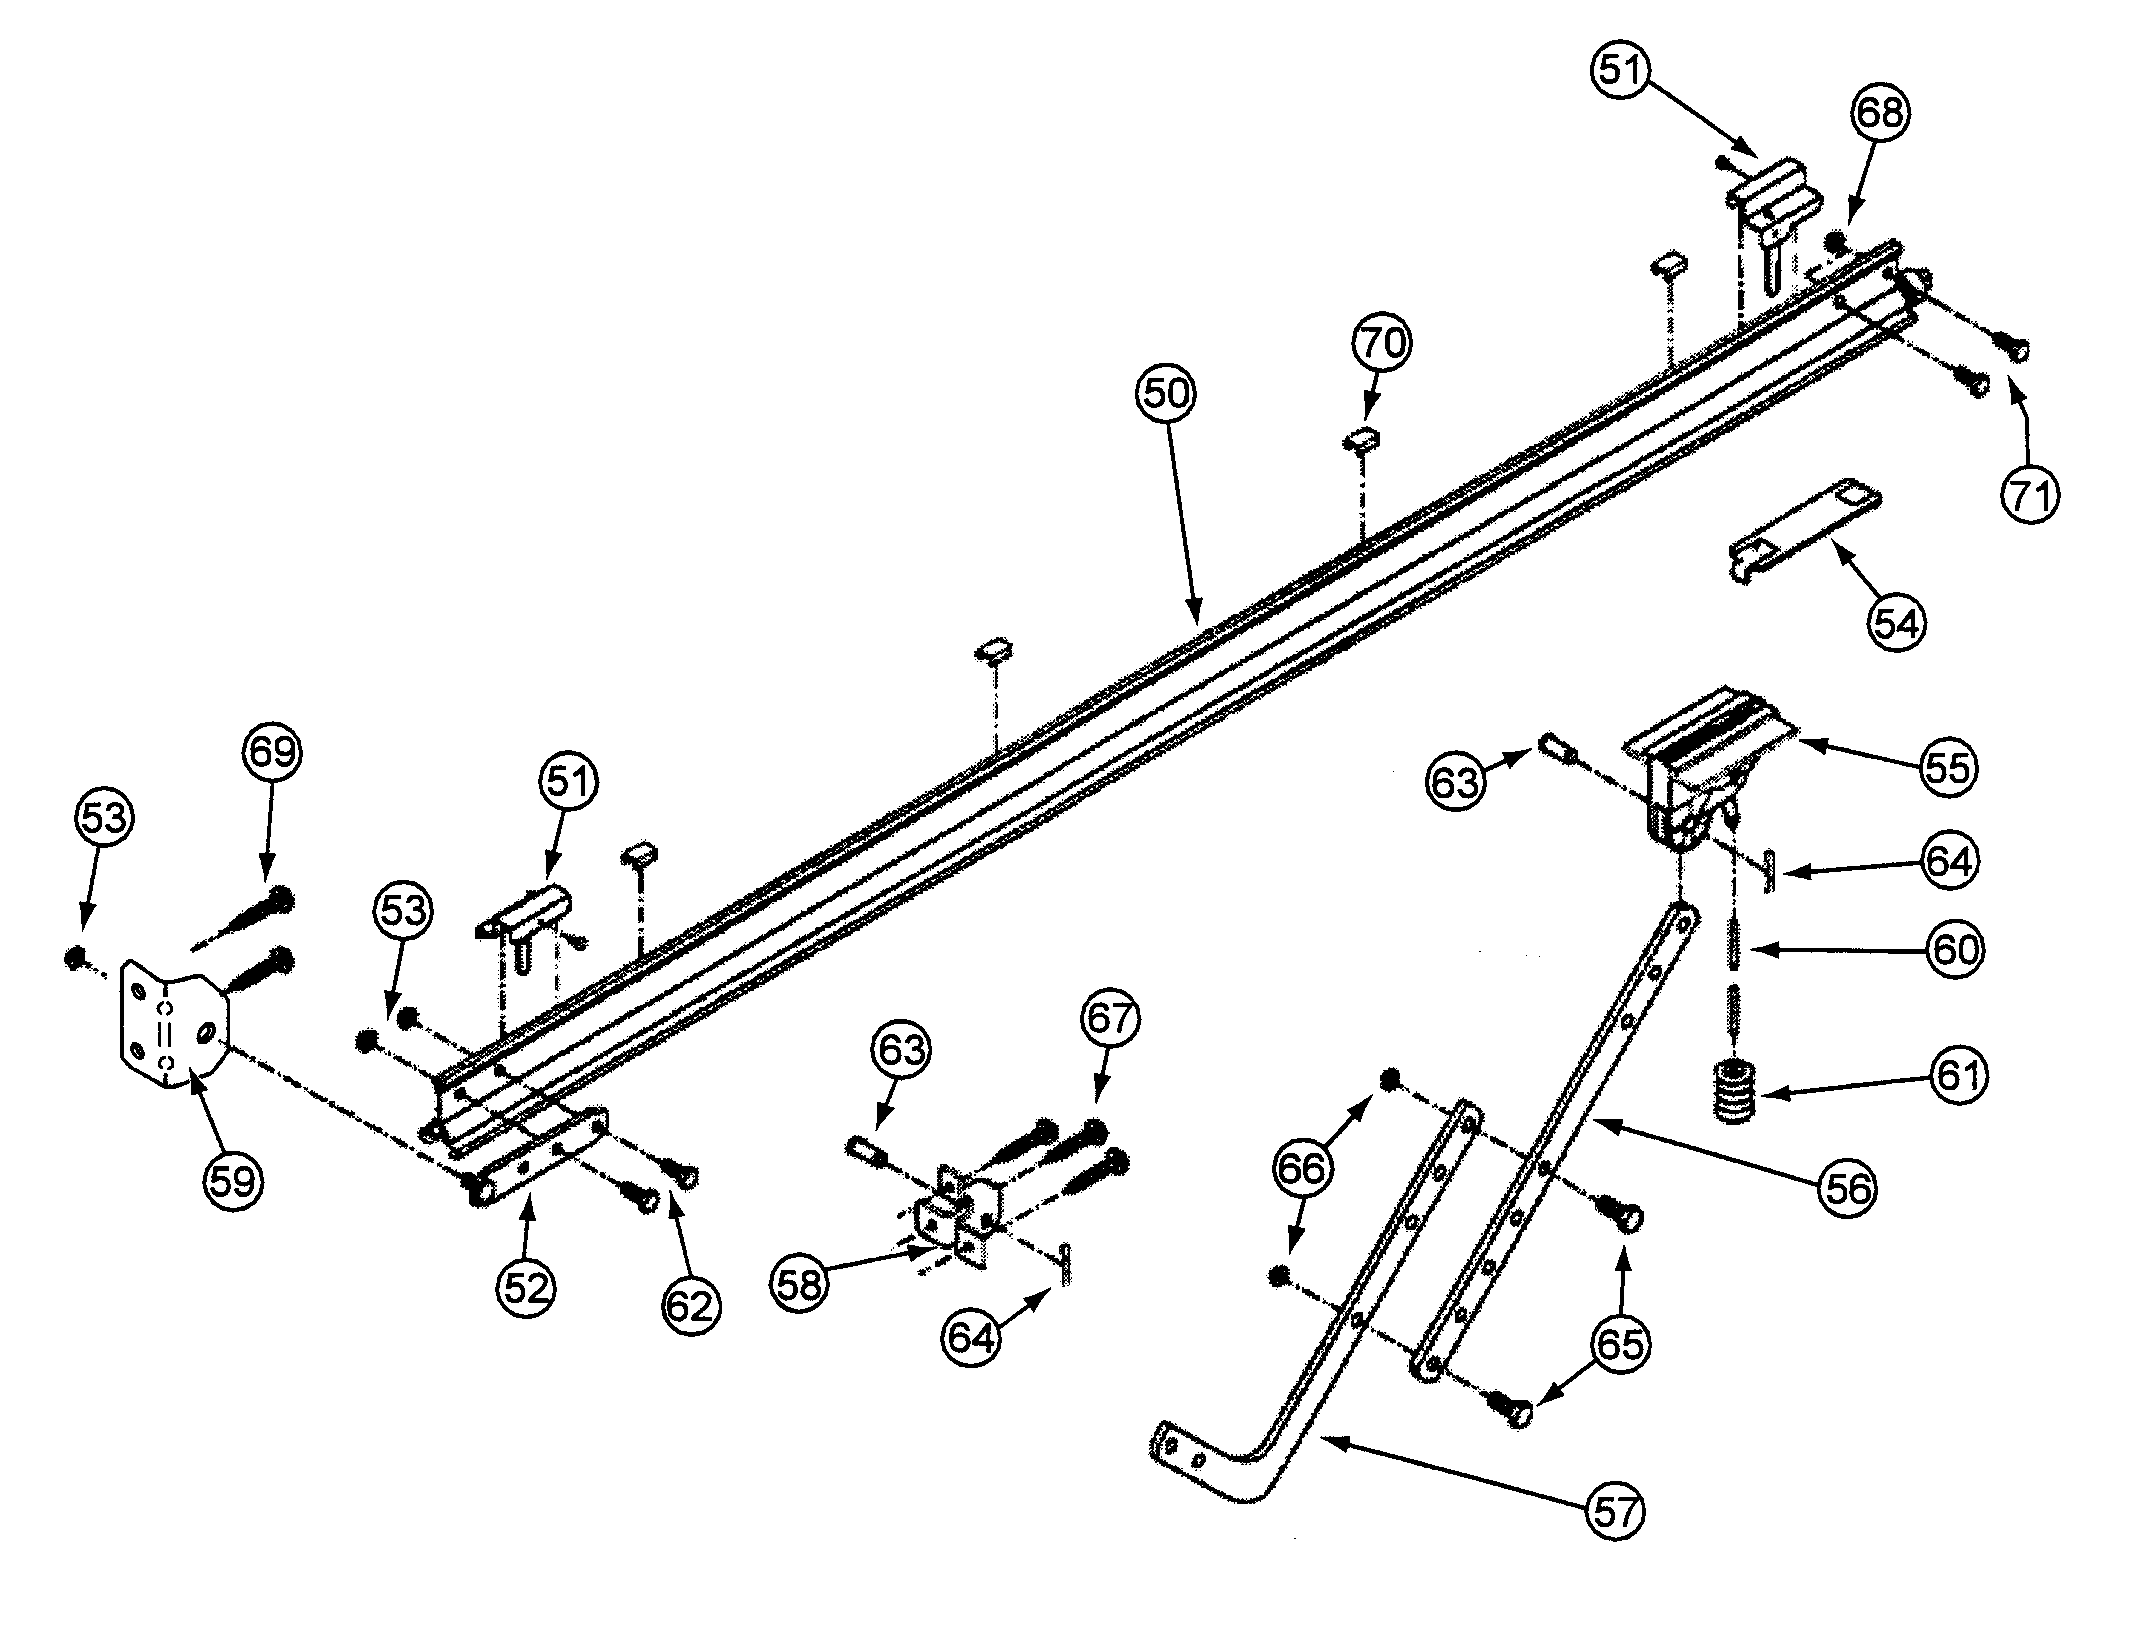 garage door opener parts diagram 1998 toyota camry exhaust system rail assy and list for model cm8600 genie